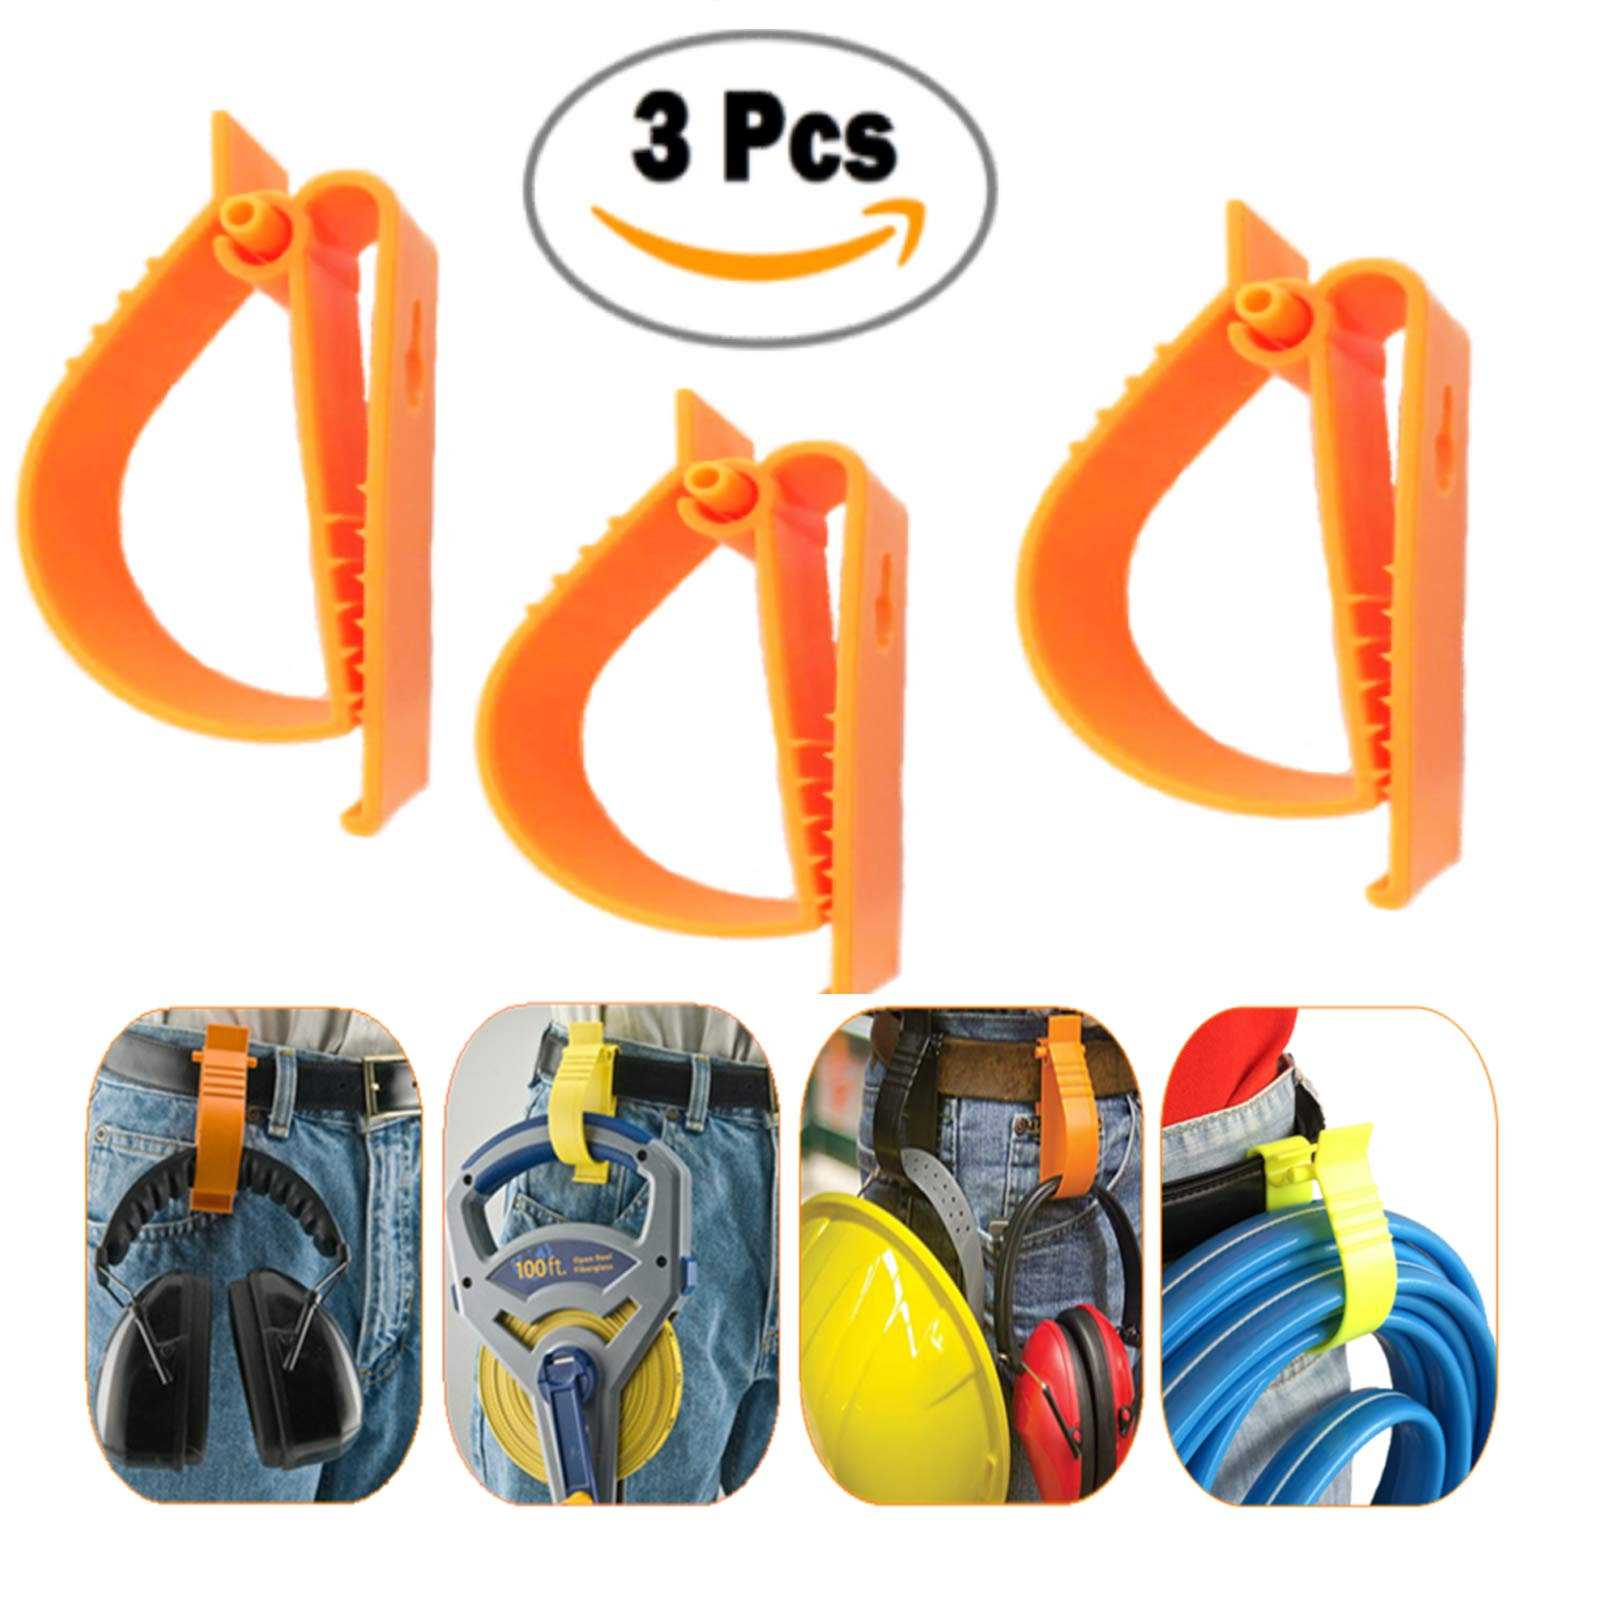 S002 Orange Color 3 Pcs Glove Grabber Clip Holder Guard Work Safety Clip Glove Keeper Safety Clips for Helmet, Earmuff, Mask, Cable, Cord, Rope Hunging in Hook Belt Clip (3 PCS PACK) by Sinomax